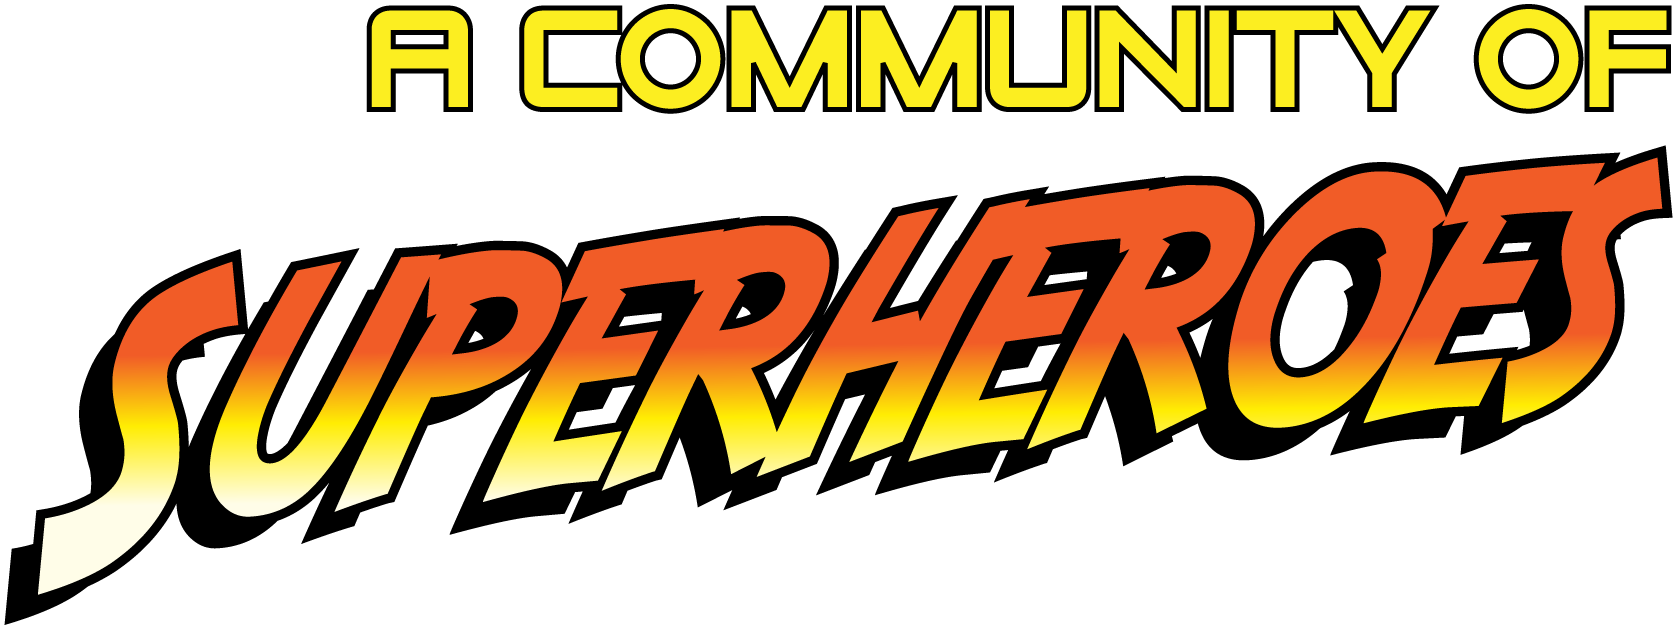 a community of superheroes